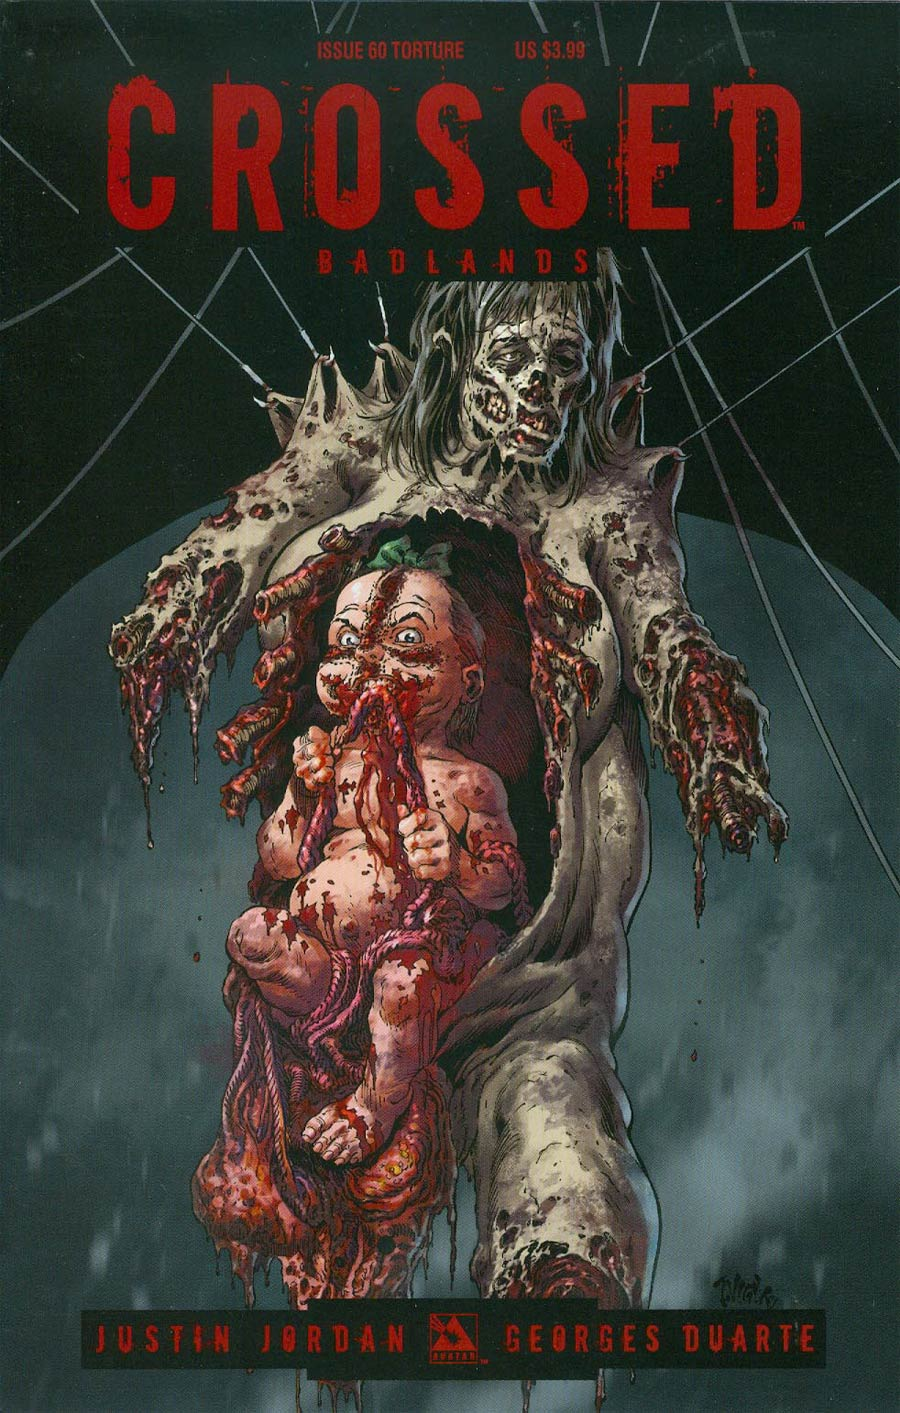 Crossed Badlands #60 Cover C Torture Cover